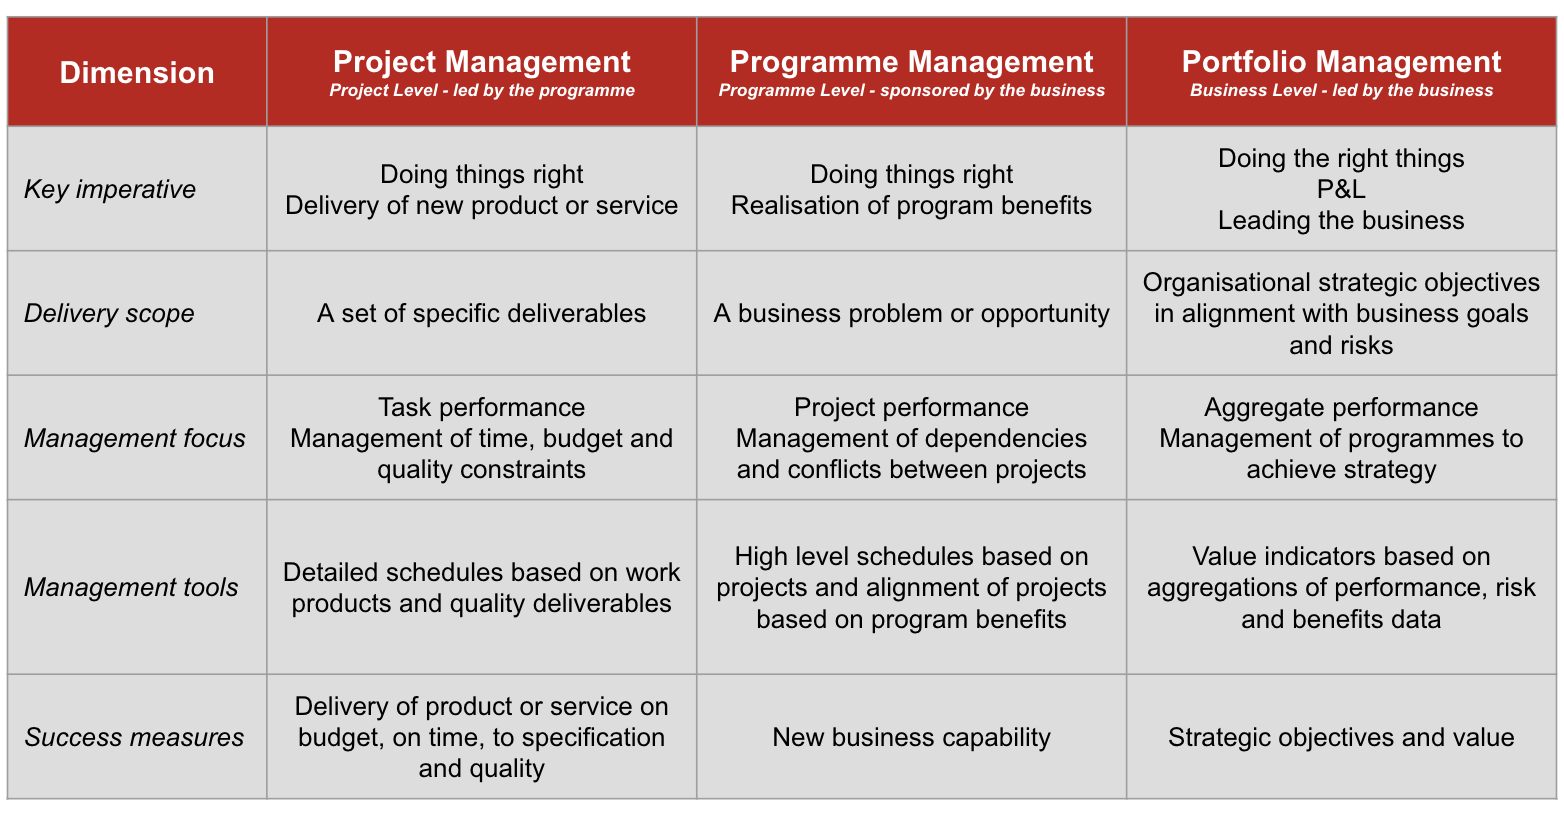 project management, programme management and portfolio management comparison